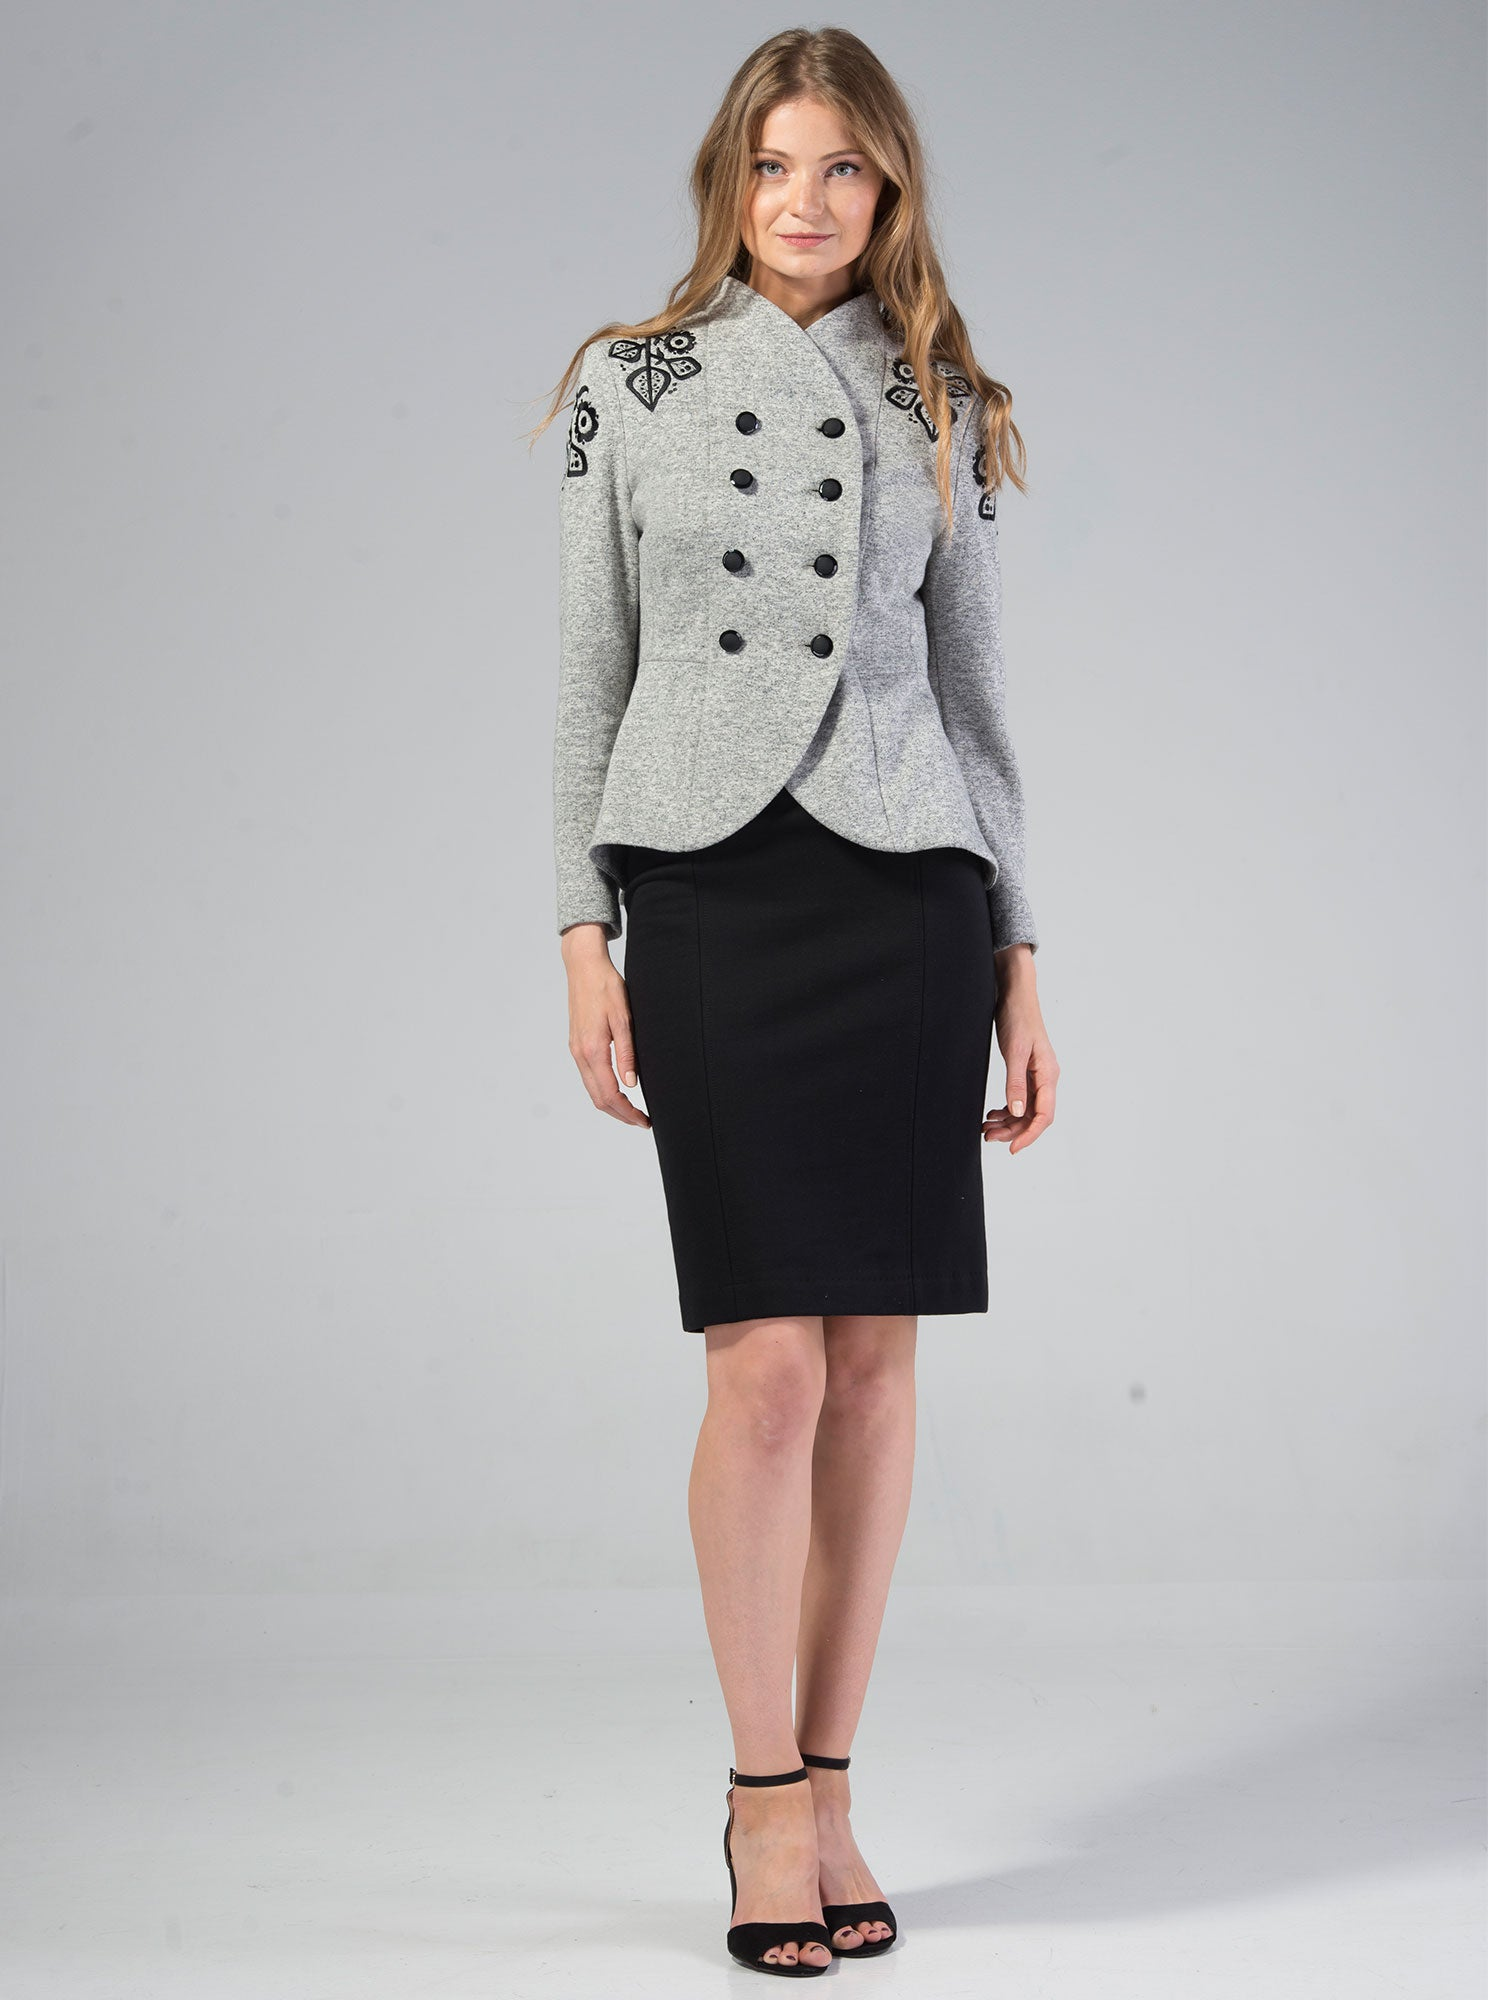 HALLIKE Embroidered Melange Grey Jacket